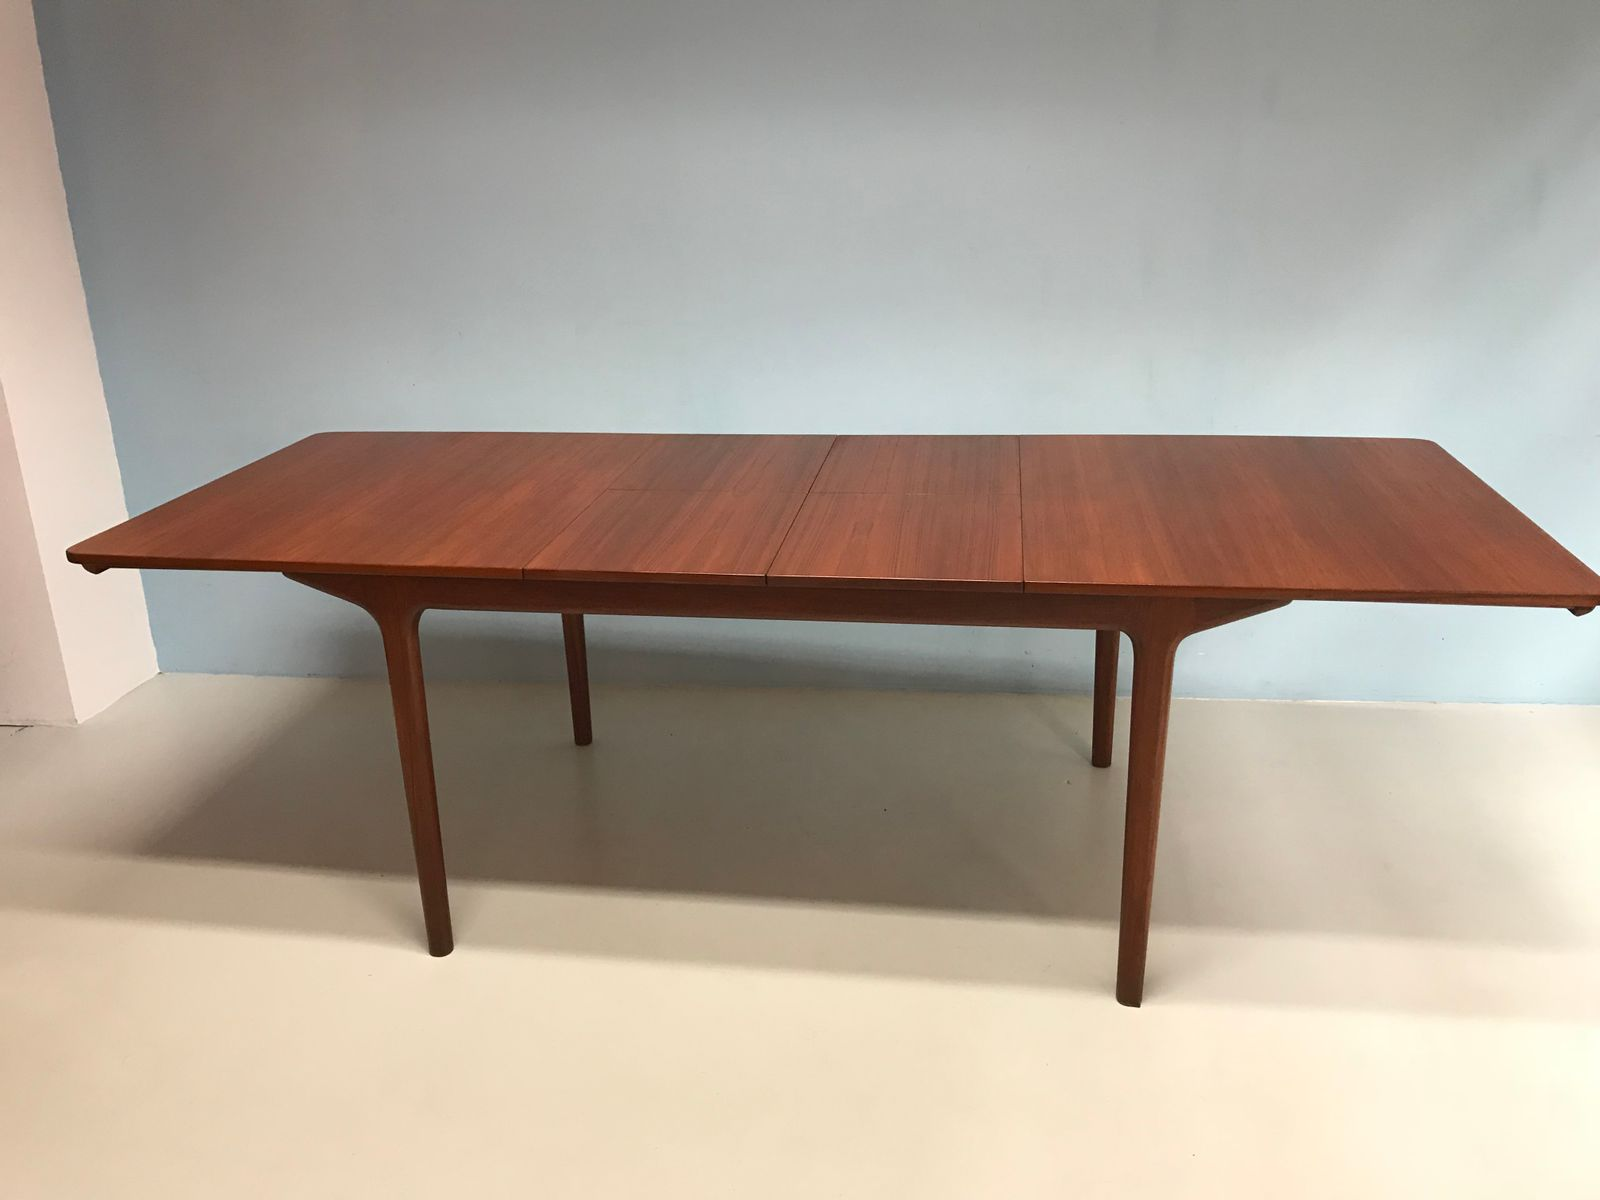 Japanese Dining Table For Sale Vintage Dining Table From Mcintosh For Sale At Pamono